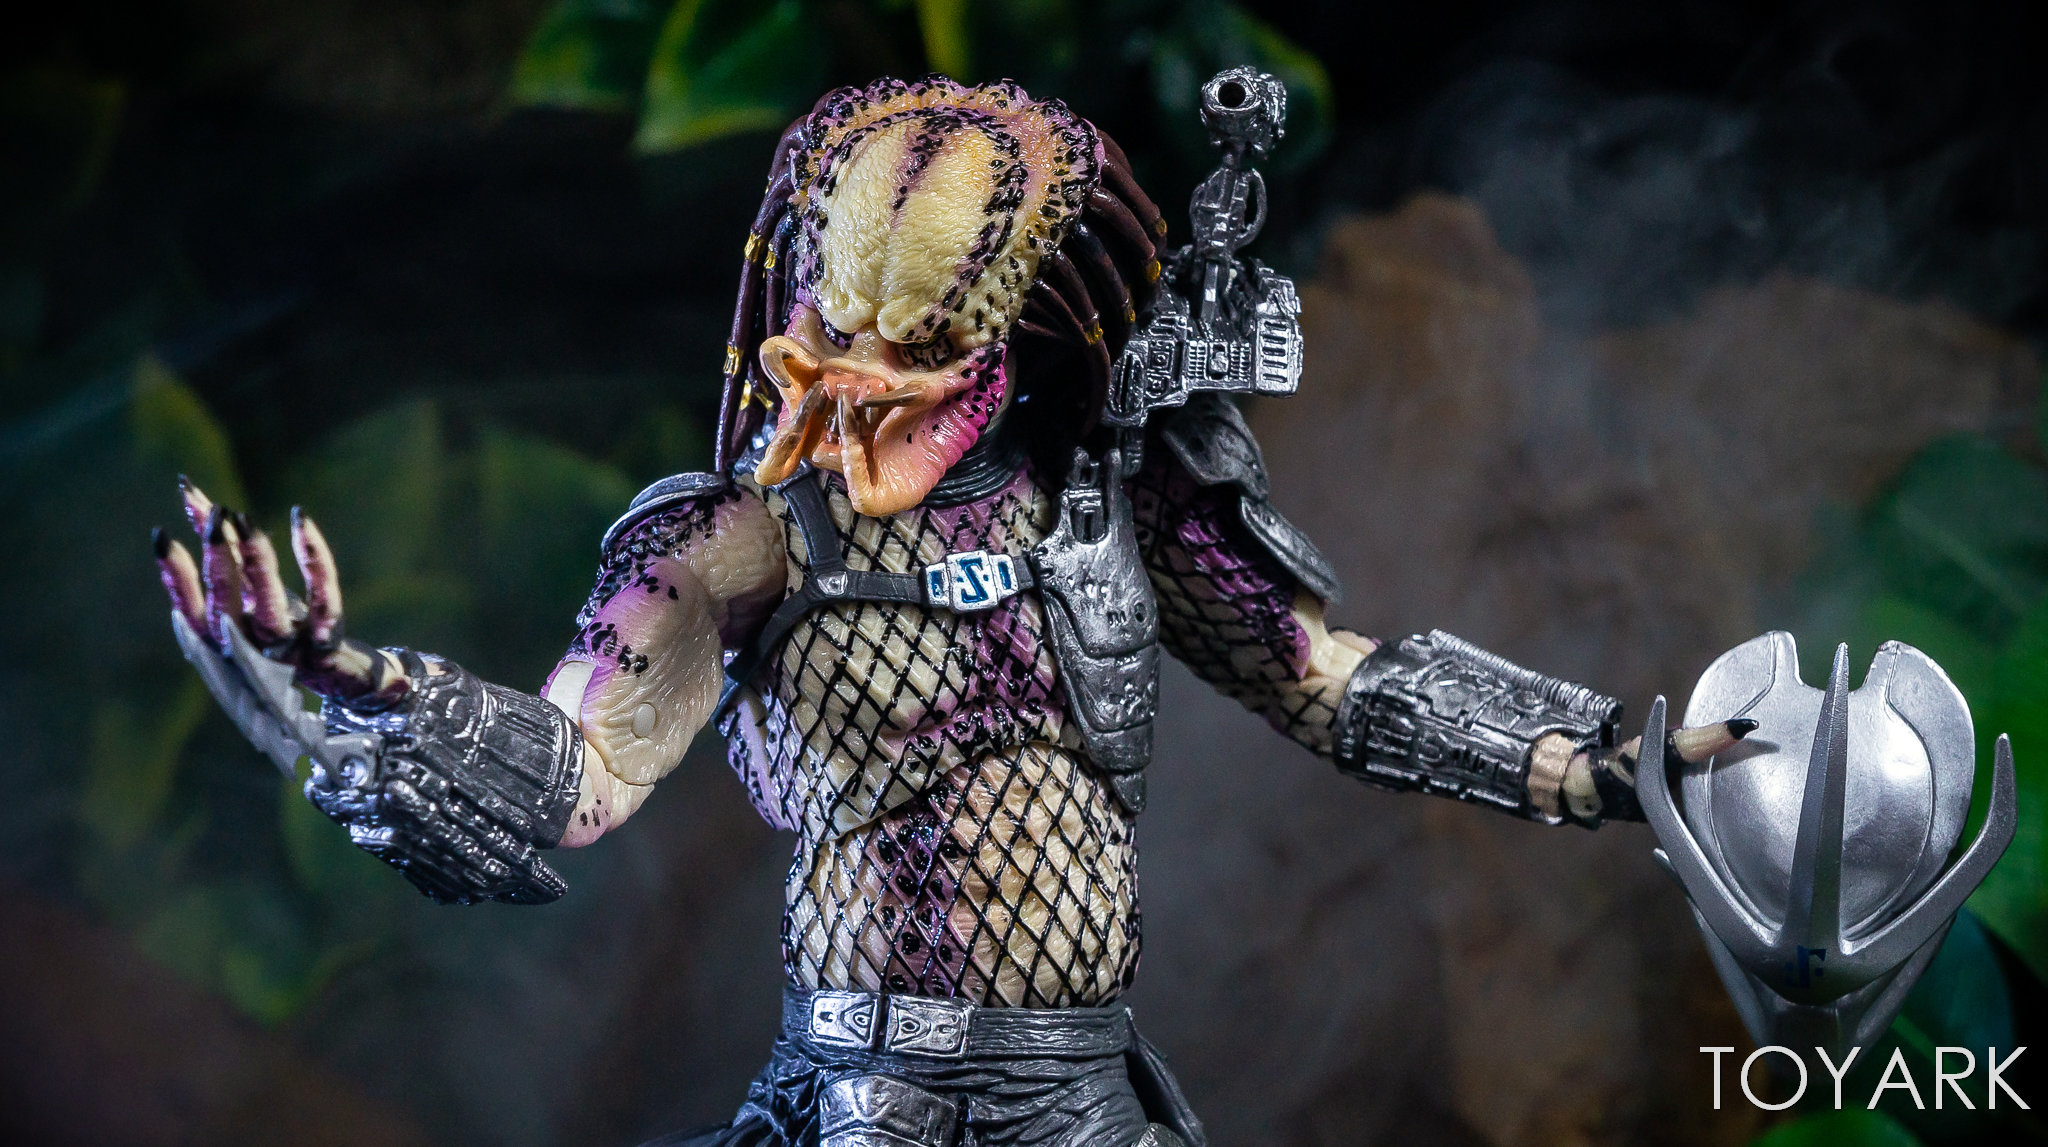 https://news.toyark.com/wp-content/uploads/sites/4/2019/01/NECA-Bad-Blood-vs-Enforcer-058.jpg